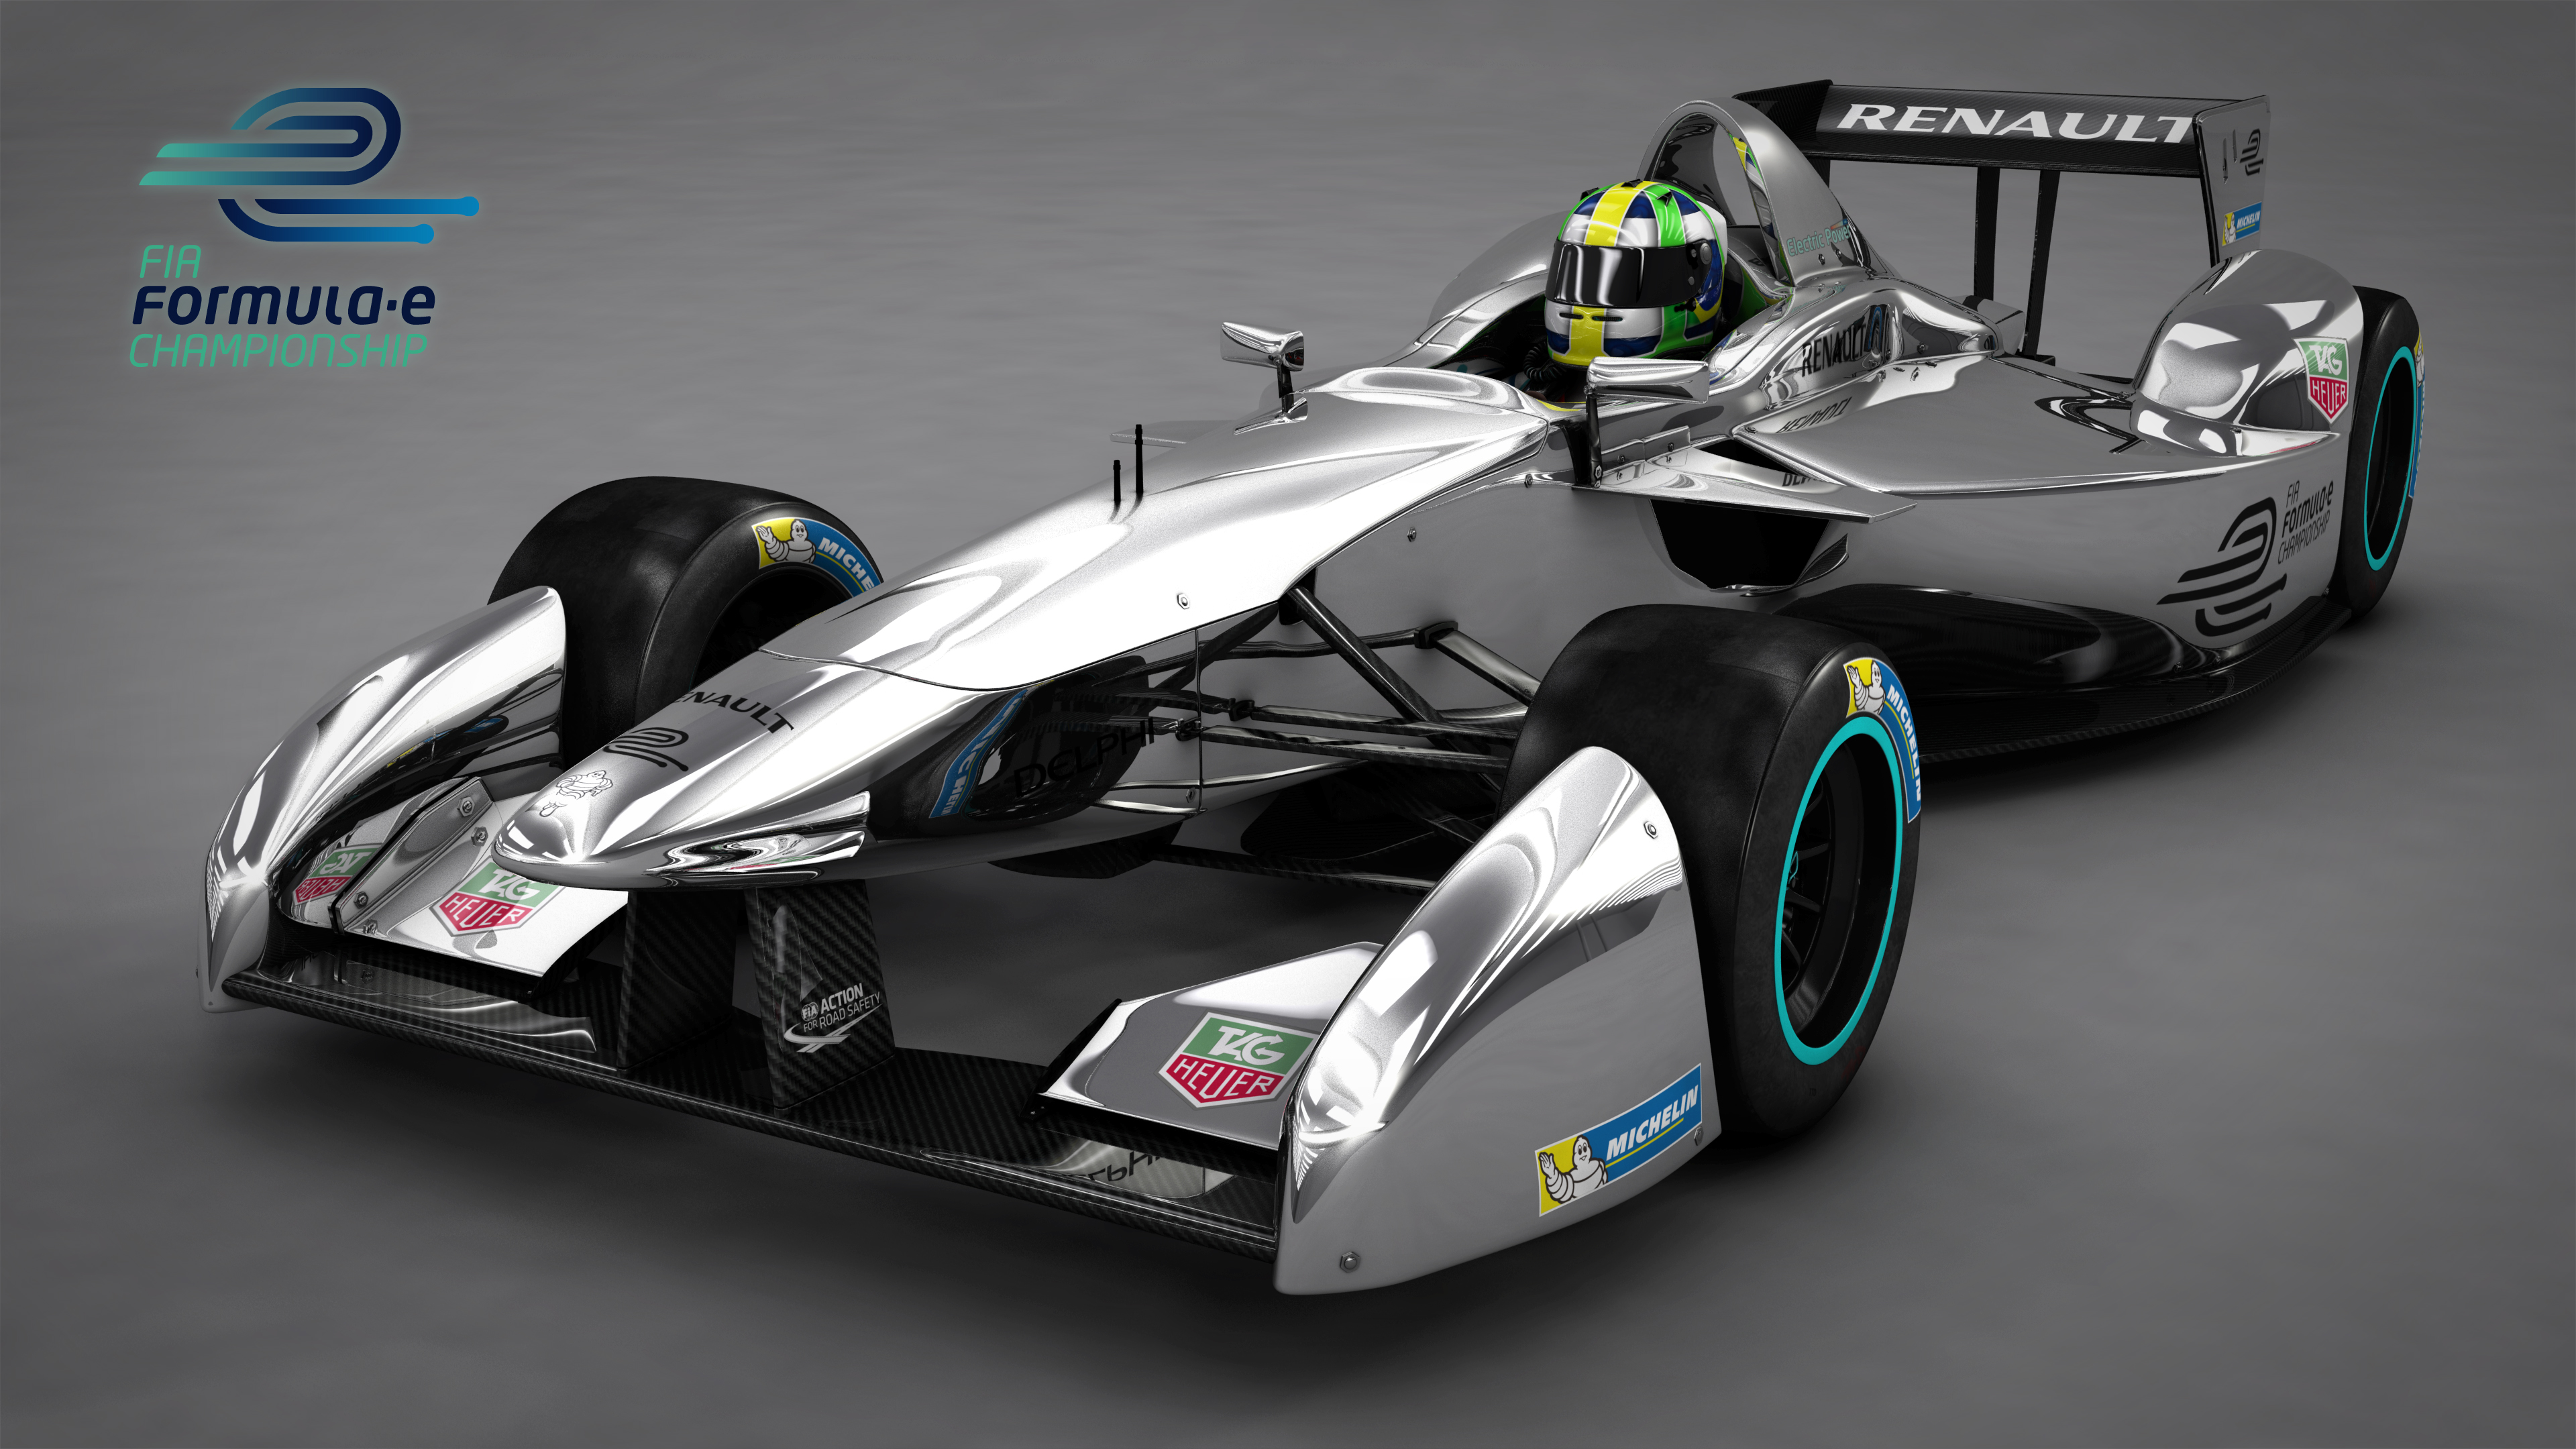 electric racing news renault partners with formula e. Black Bedroom Furniture Sets. Home Design Ideas